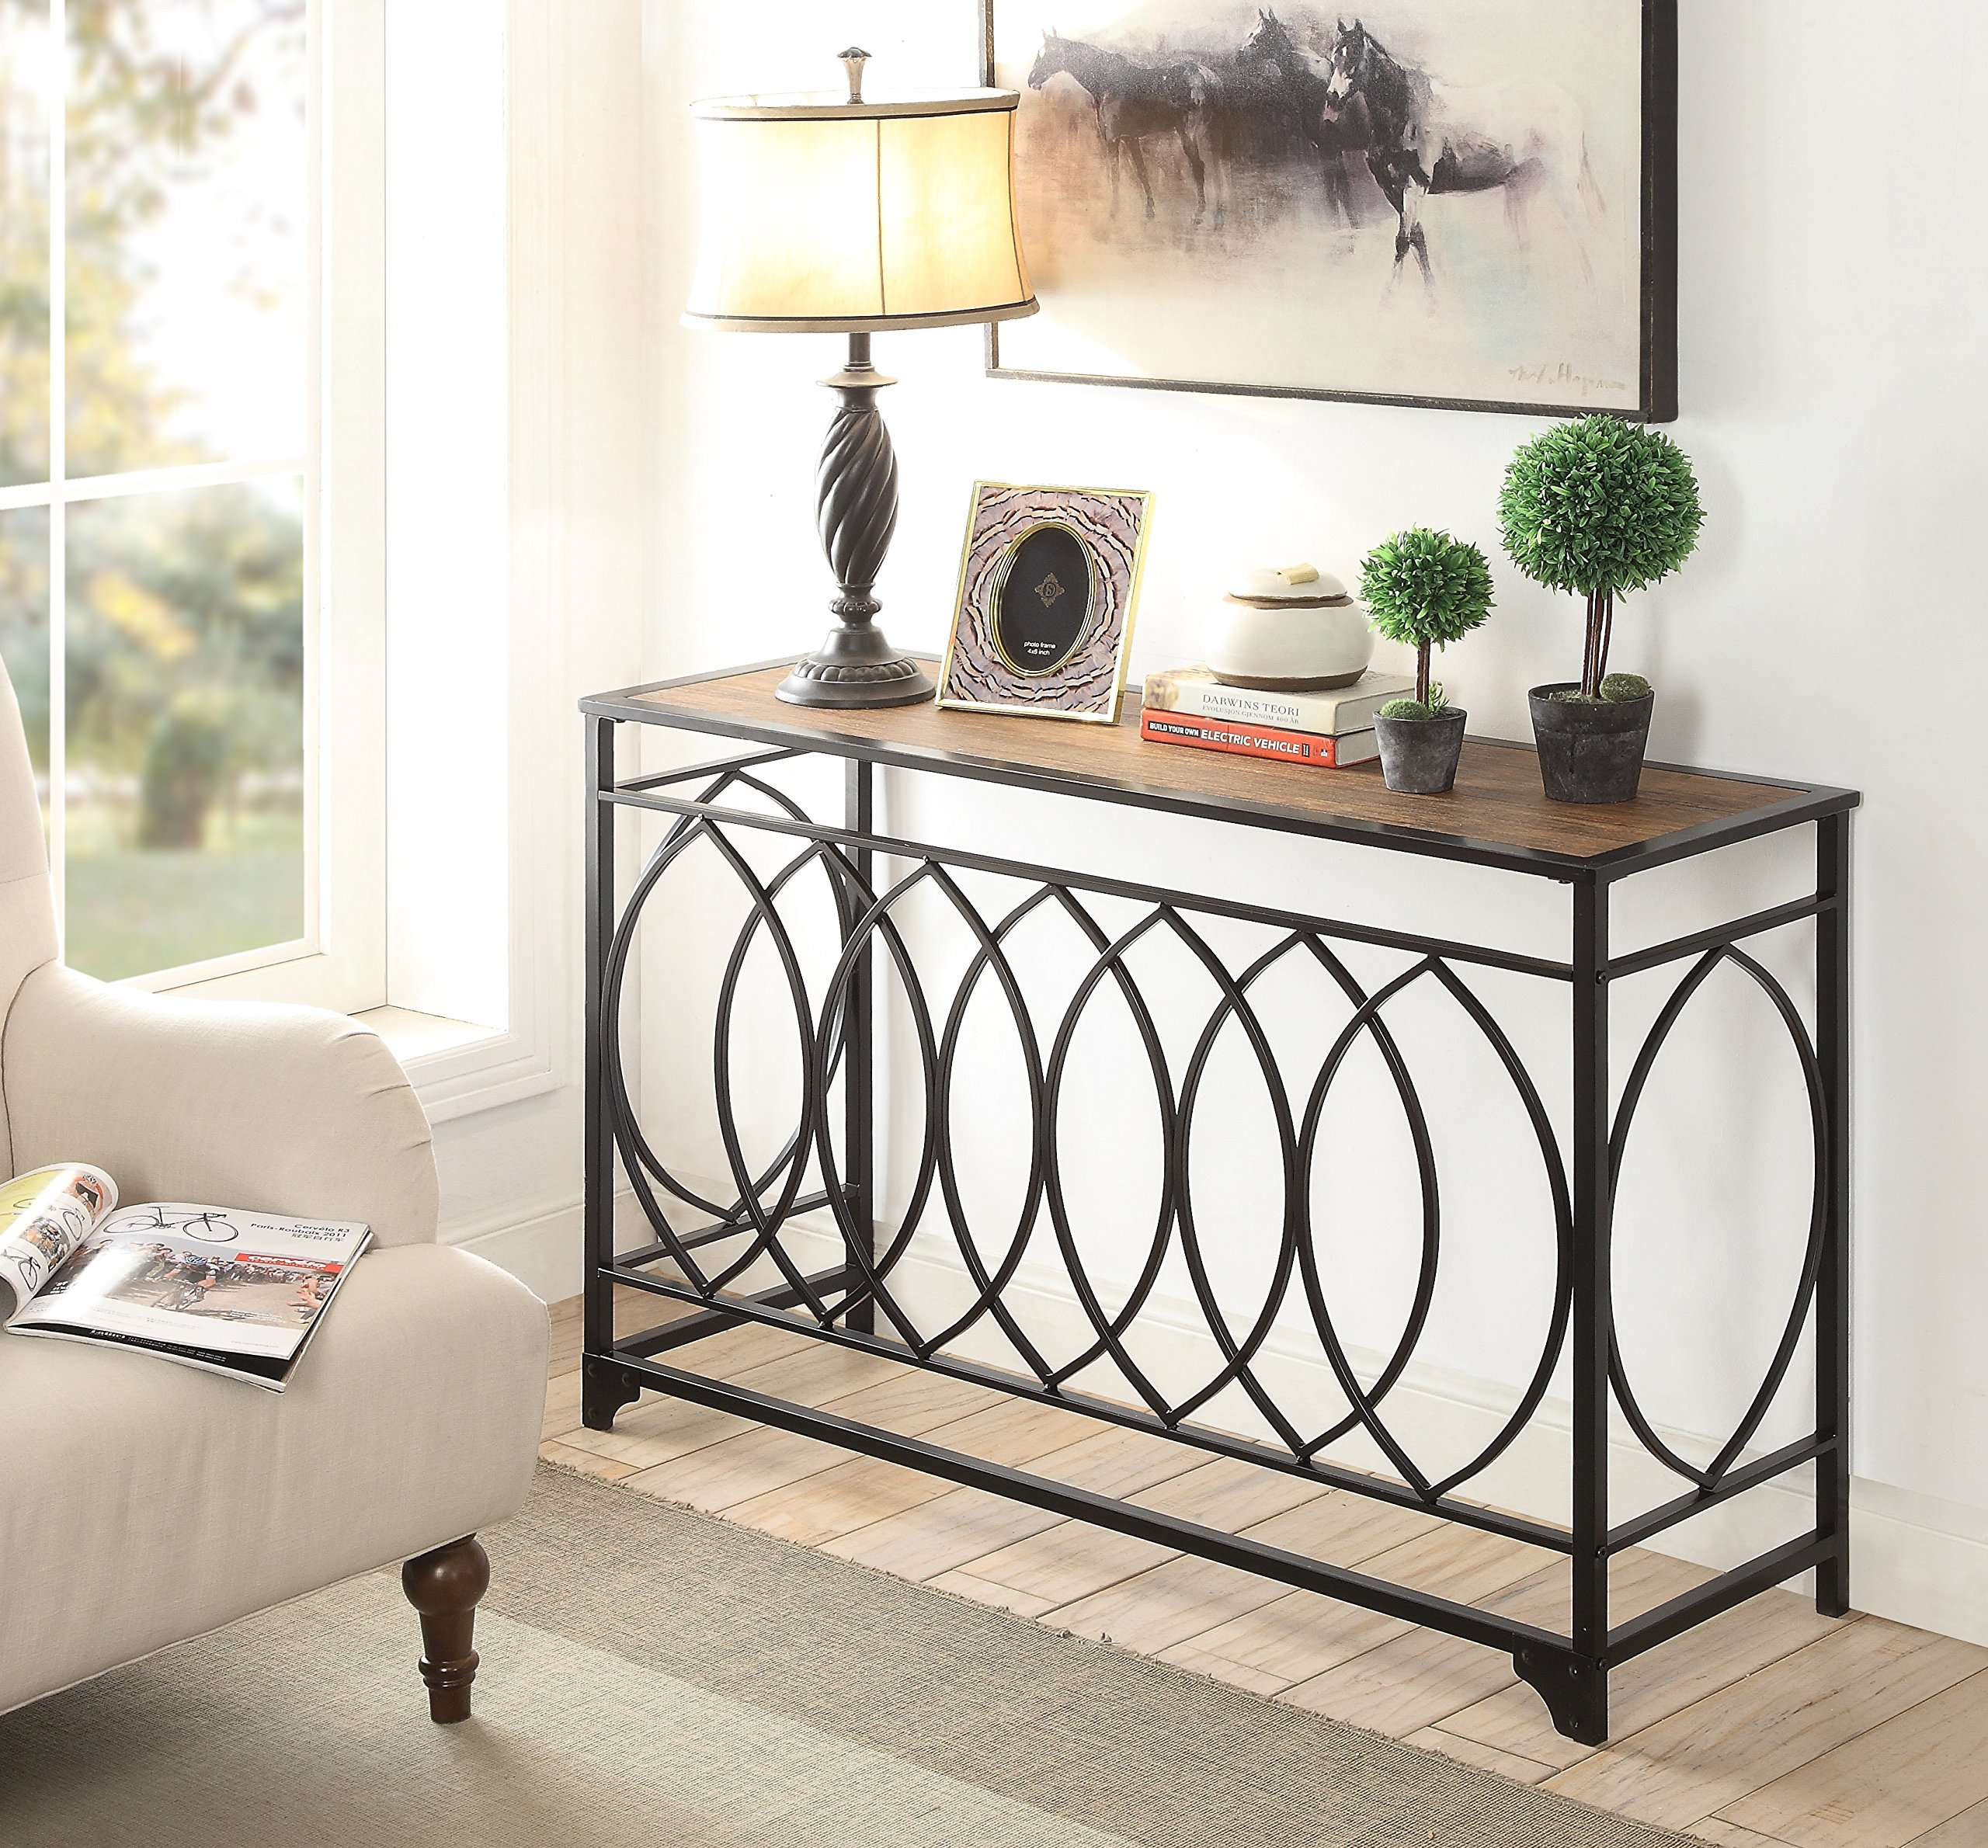 Vintage Brown Finish Black Metal Circle Design Console Sofa Table by eHomeProducts